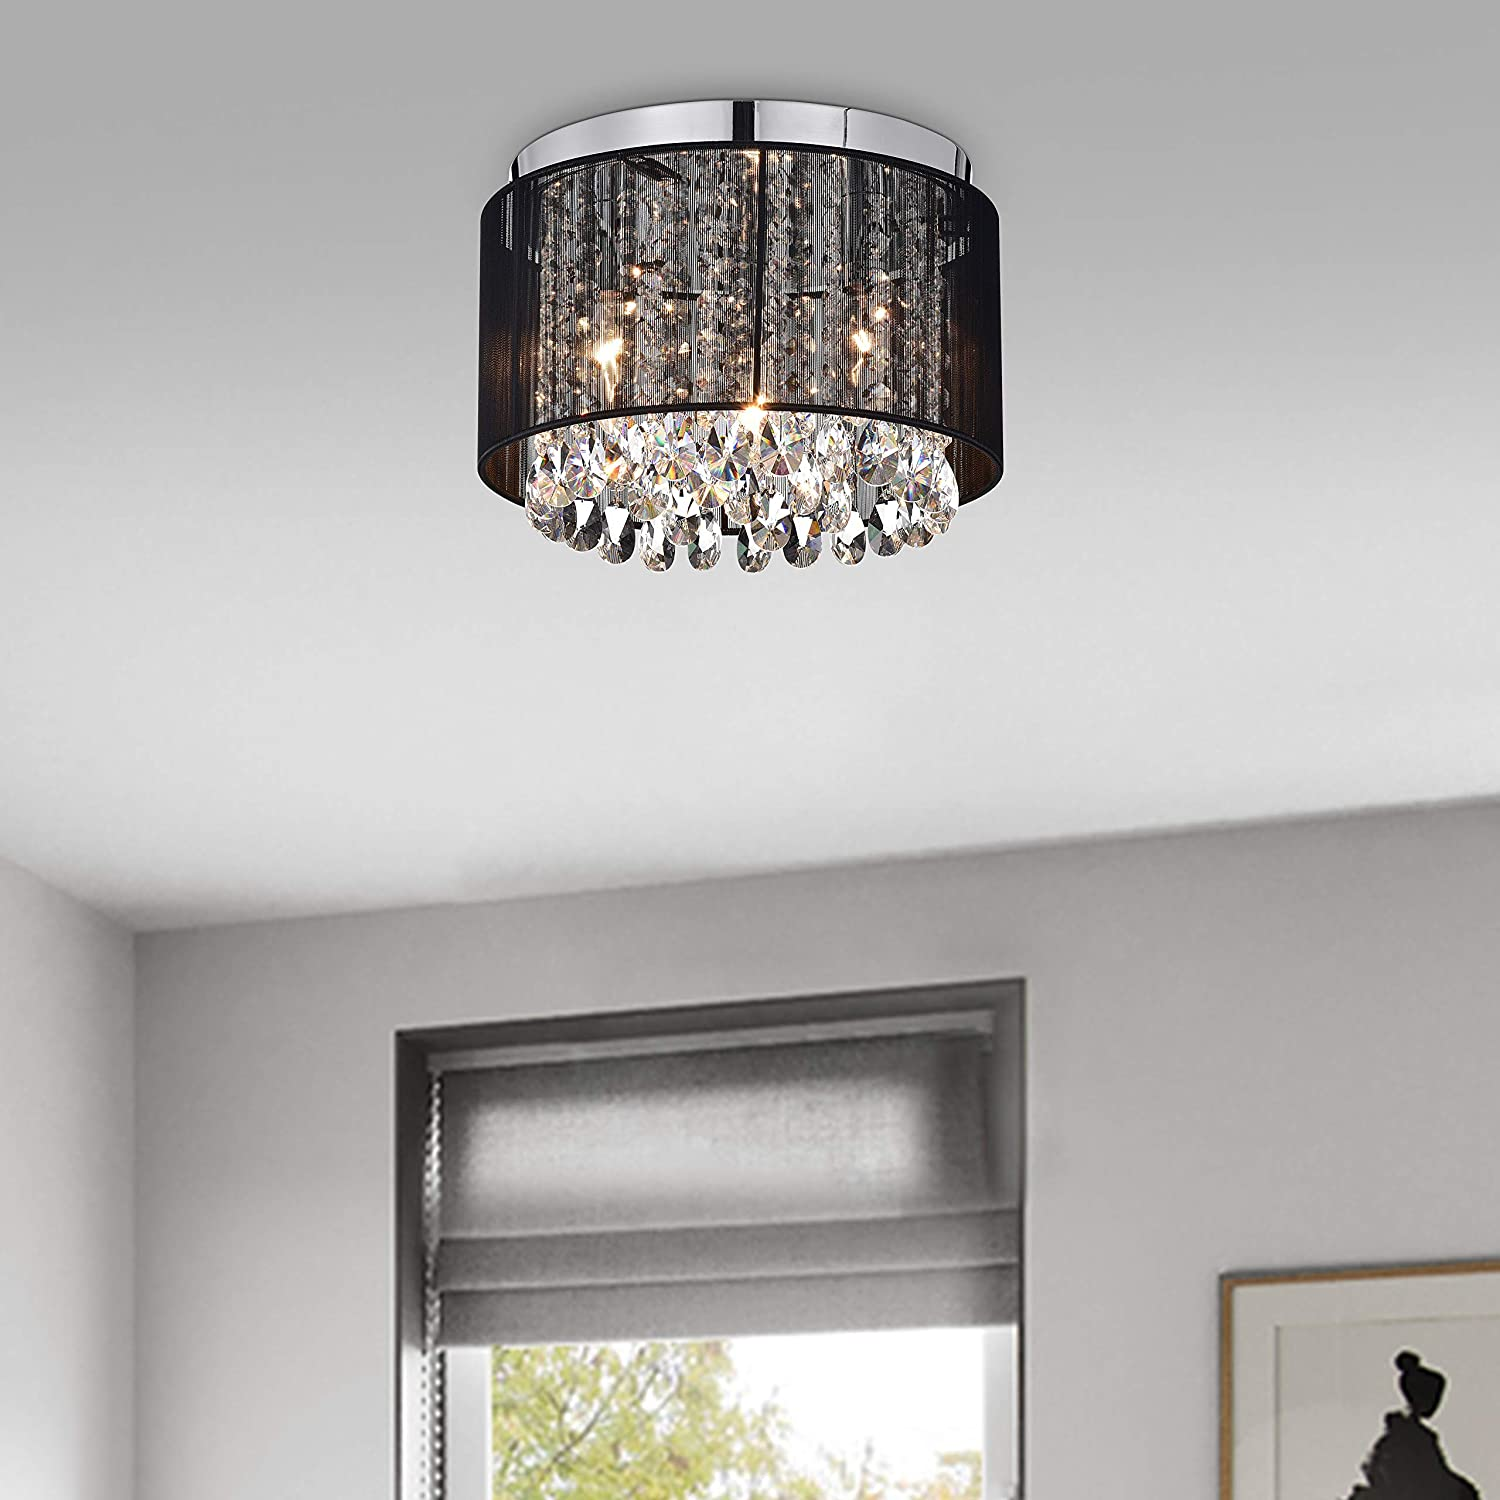 Chandeliers Flush Mount Light Fixture Crystal Chandelier Lighting Black Drum Ceiling Lights 3 Light